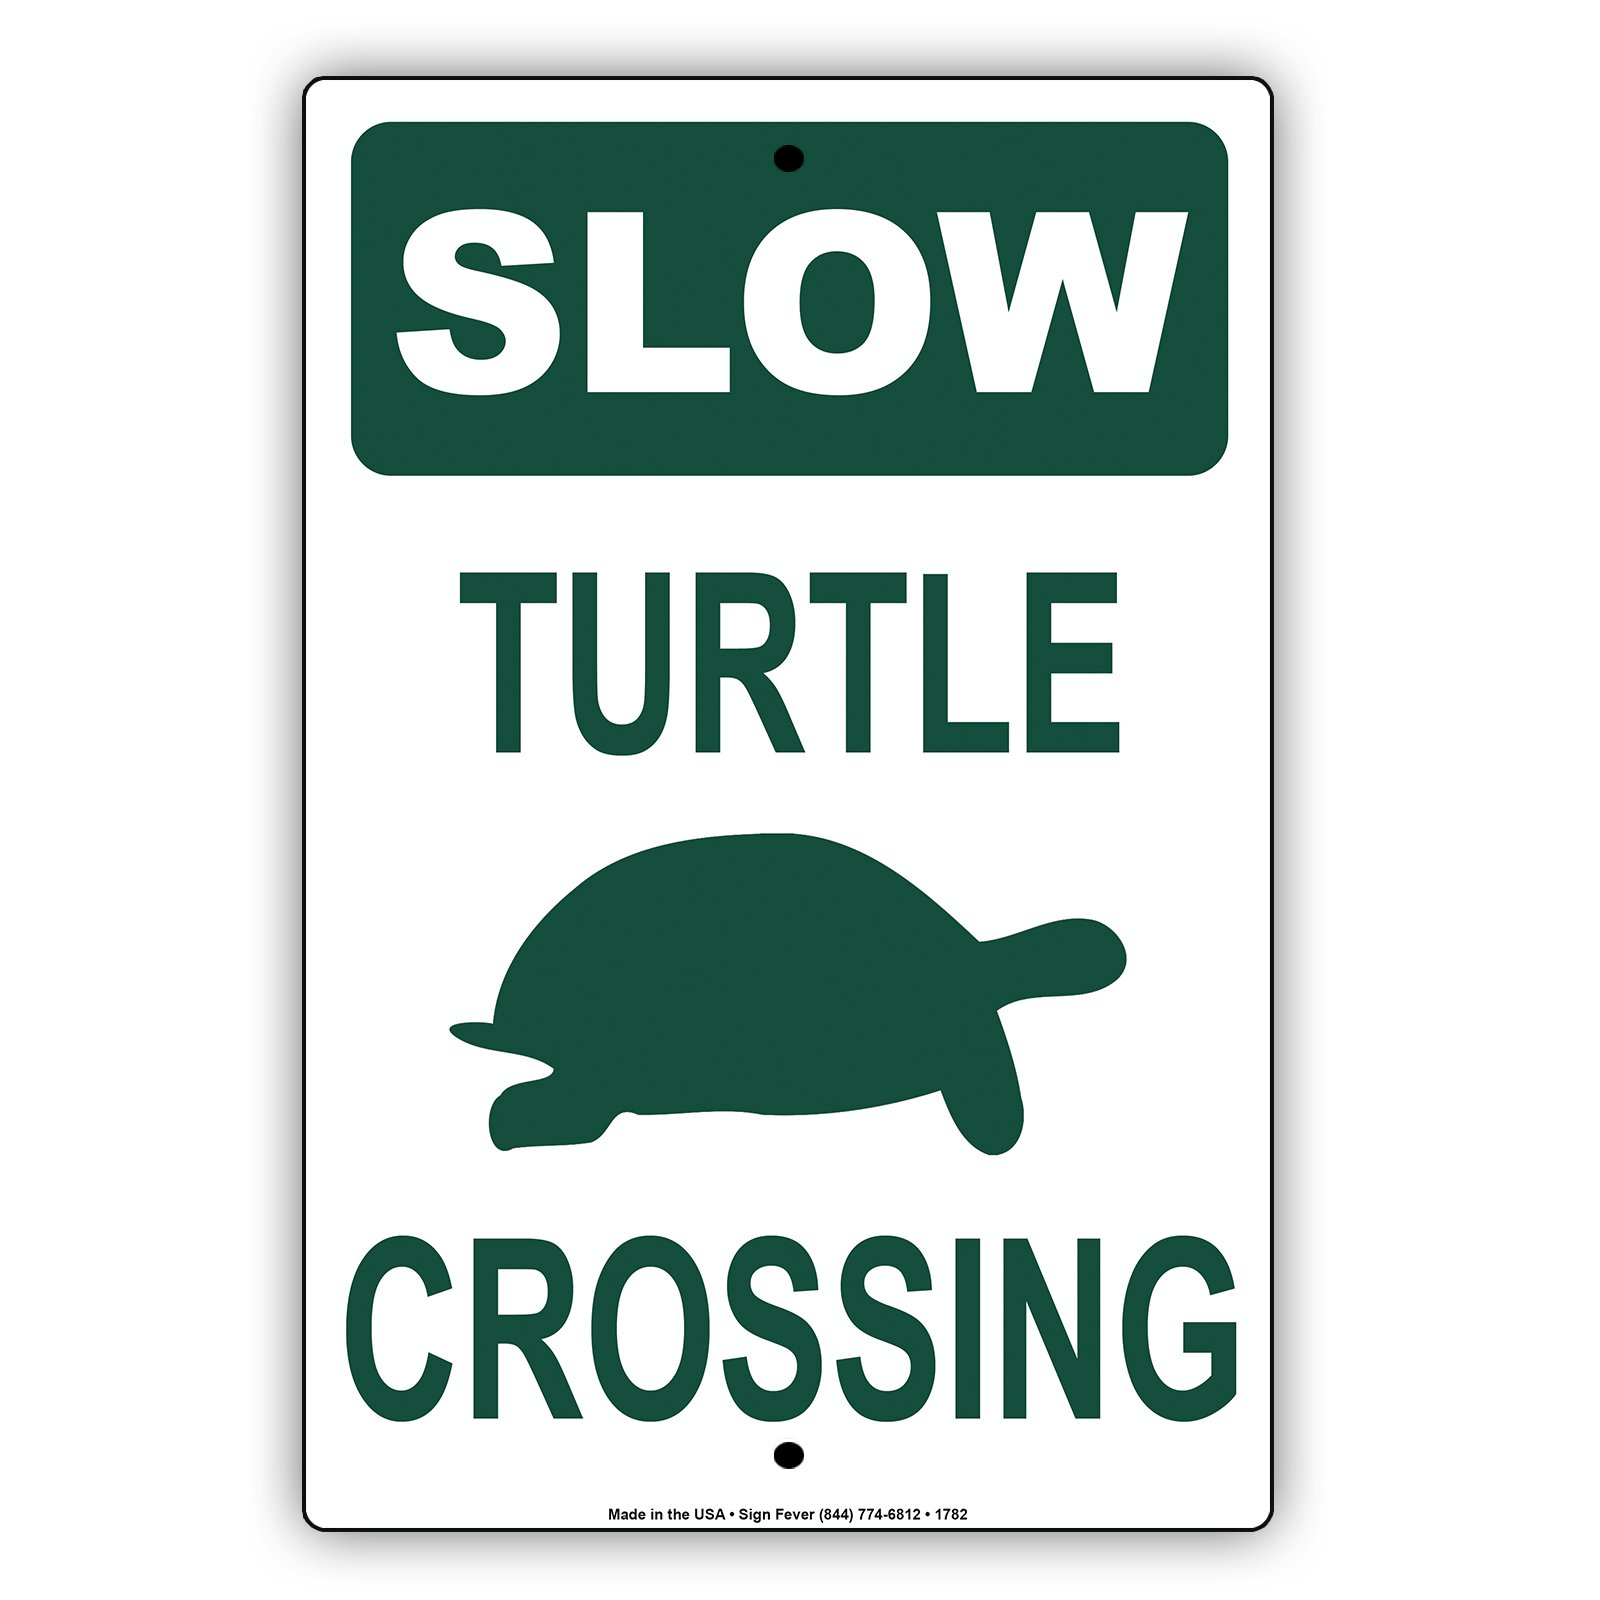 Slow Turtle Crossing With Graphic No Speeding Hilarious Epic Funny Novelty Caution Alert Notice Aluminum Note Metal 8''x12'' Sign Plate